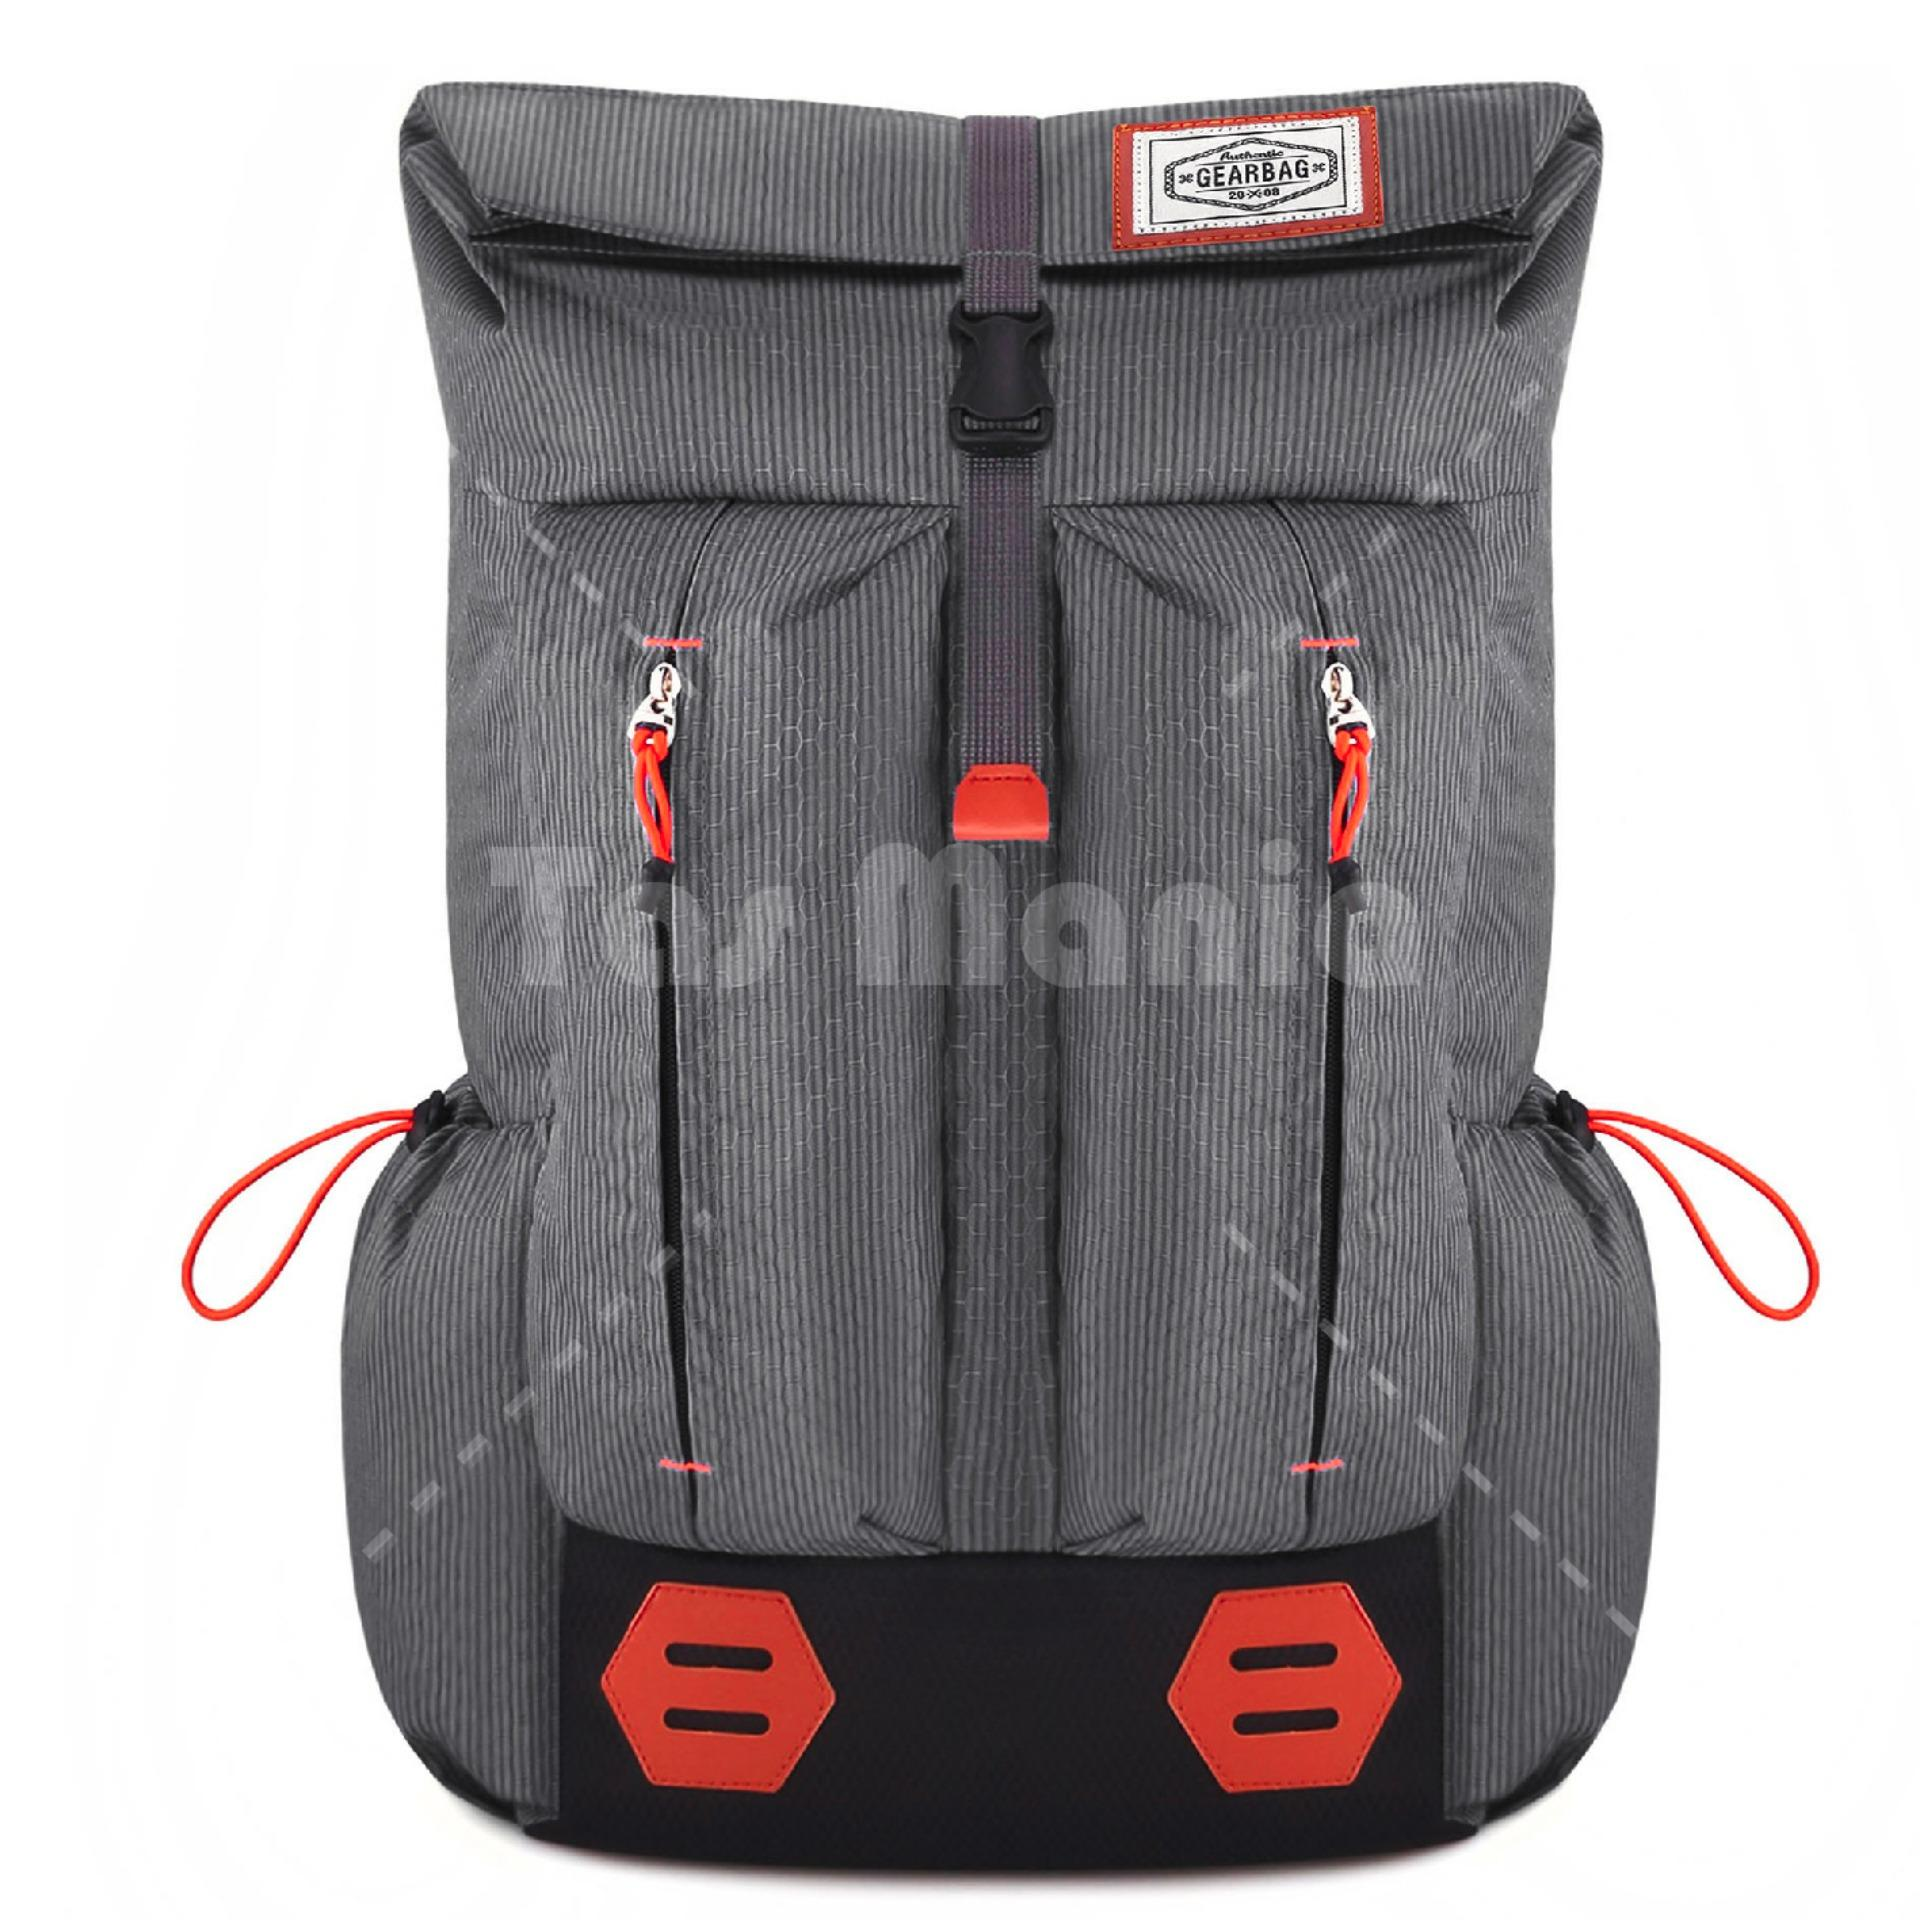 Harga Diskon Tas Ransel Gear Bag Mount Everest Adventure Outdoor Pria Wanita Laptop Backpack Dark Shadow